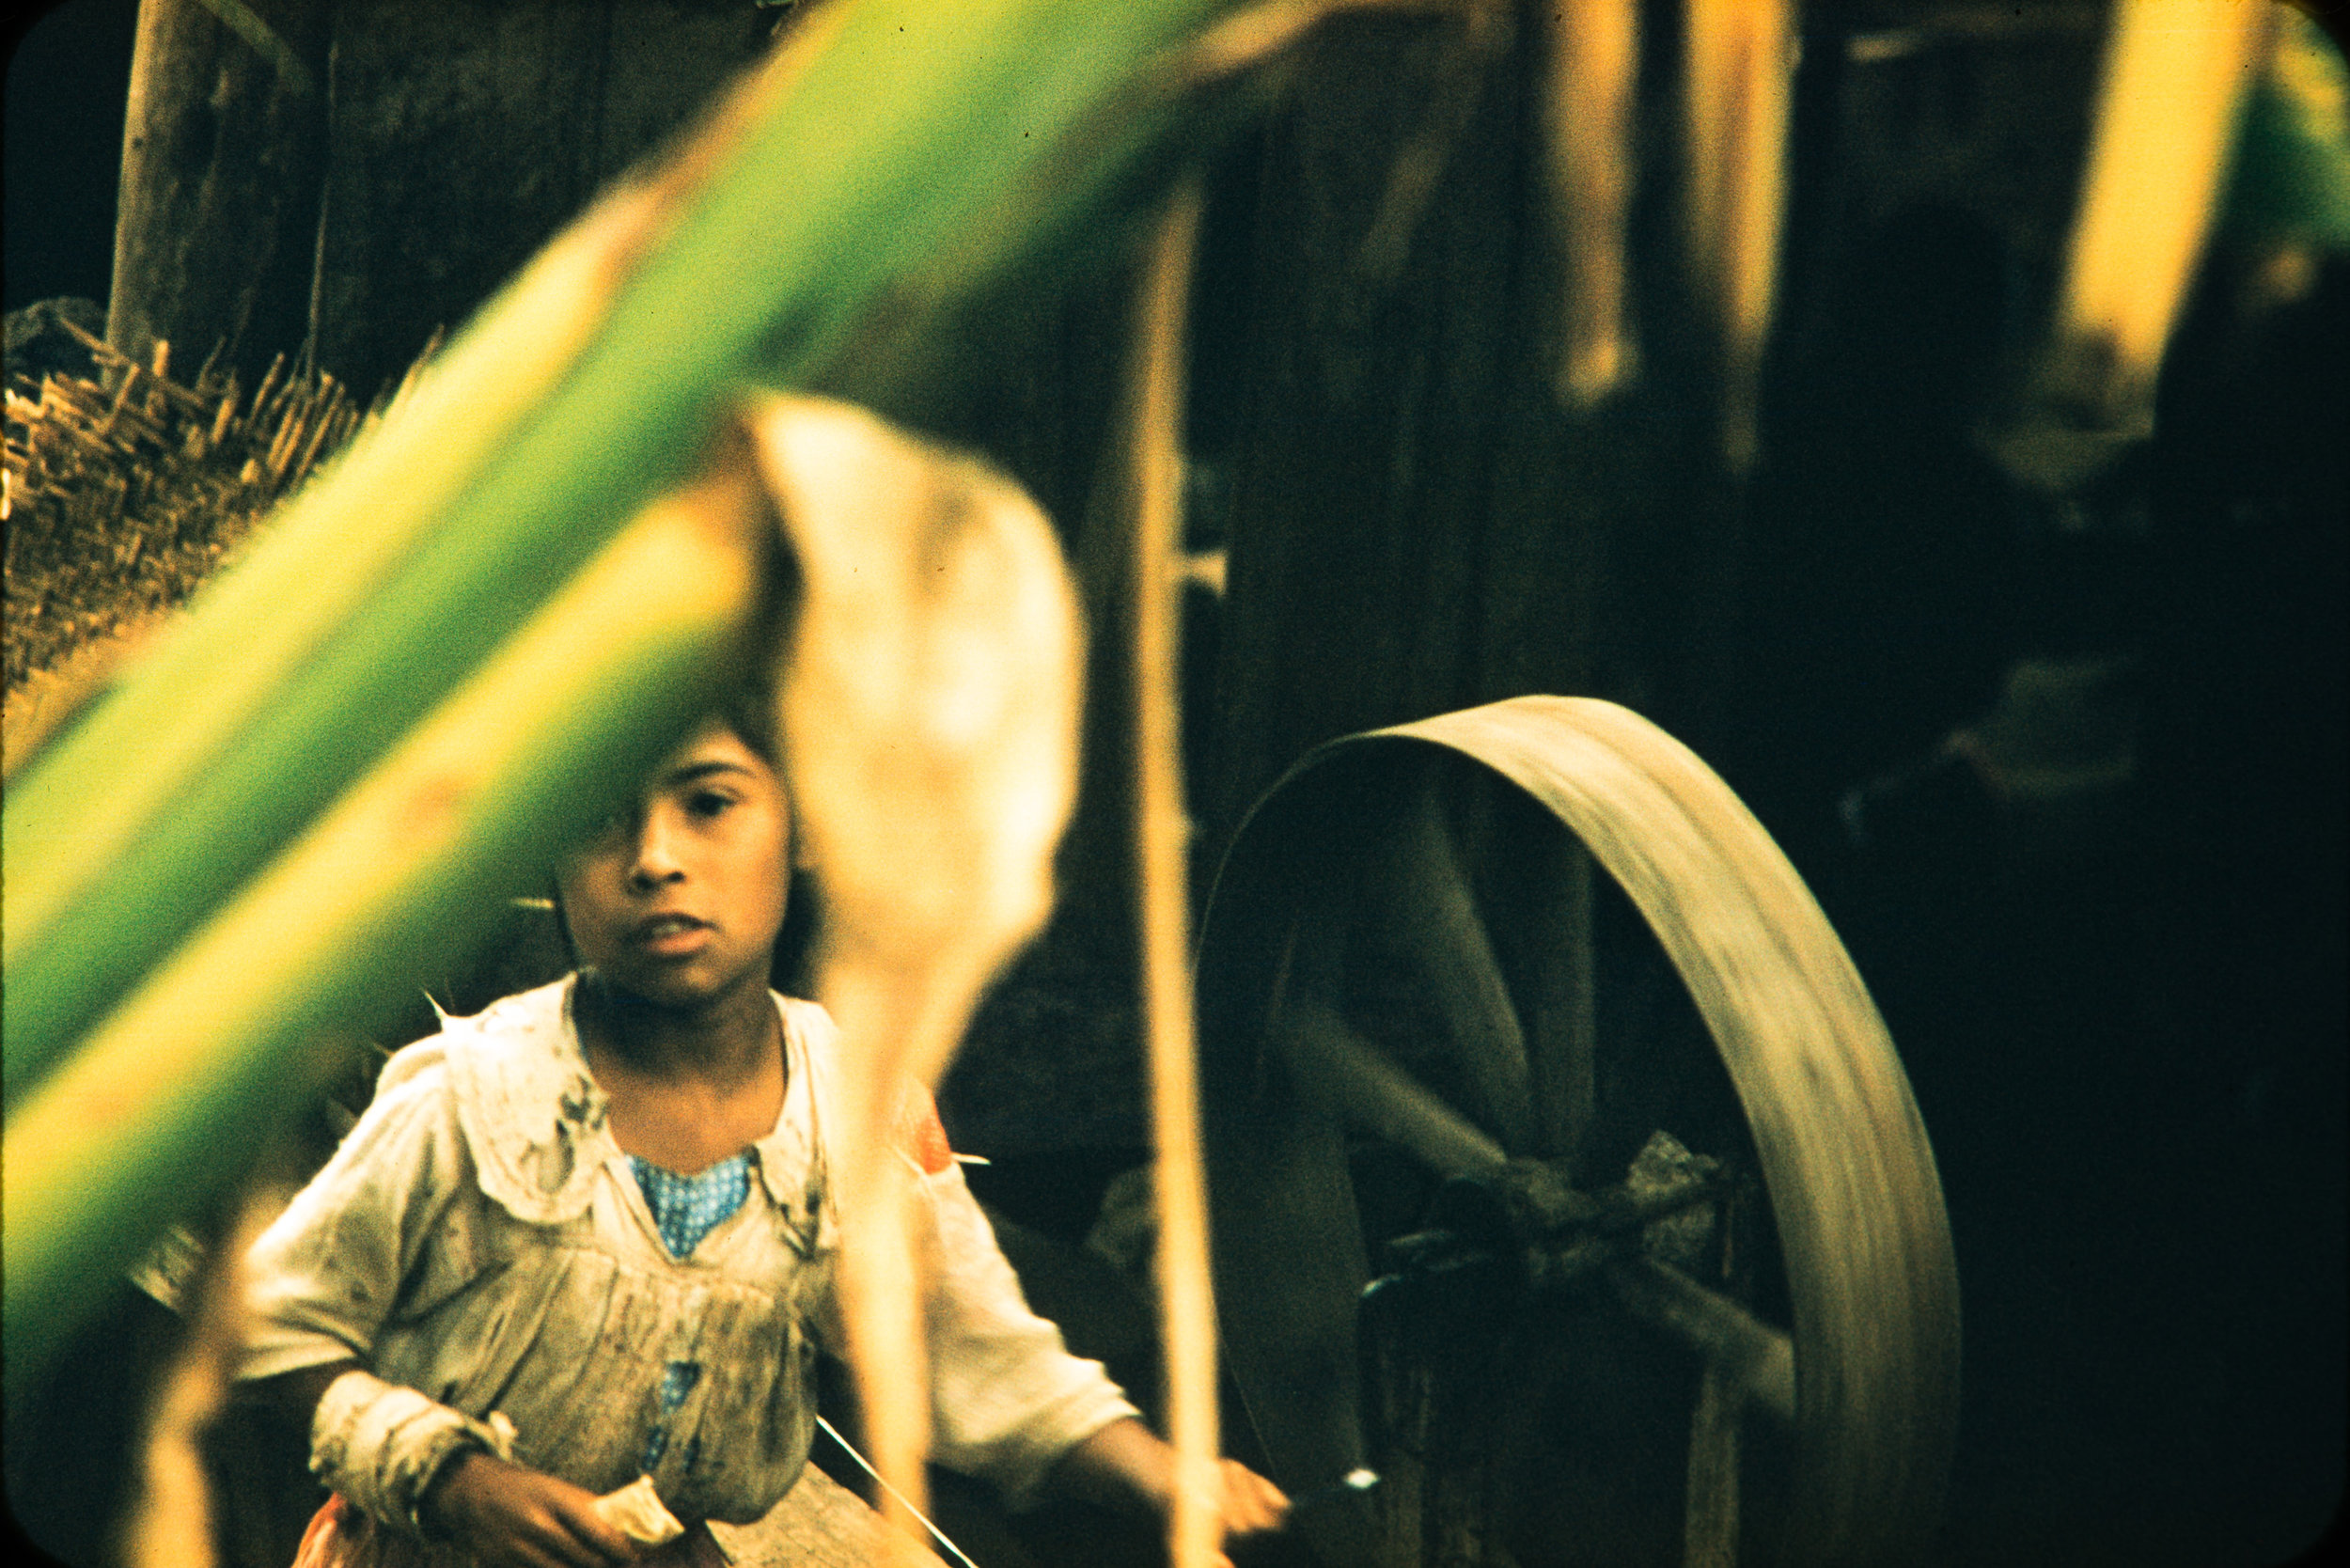 Boy behind plant with wheel, Mexico, 1957